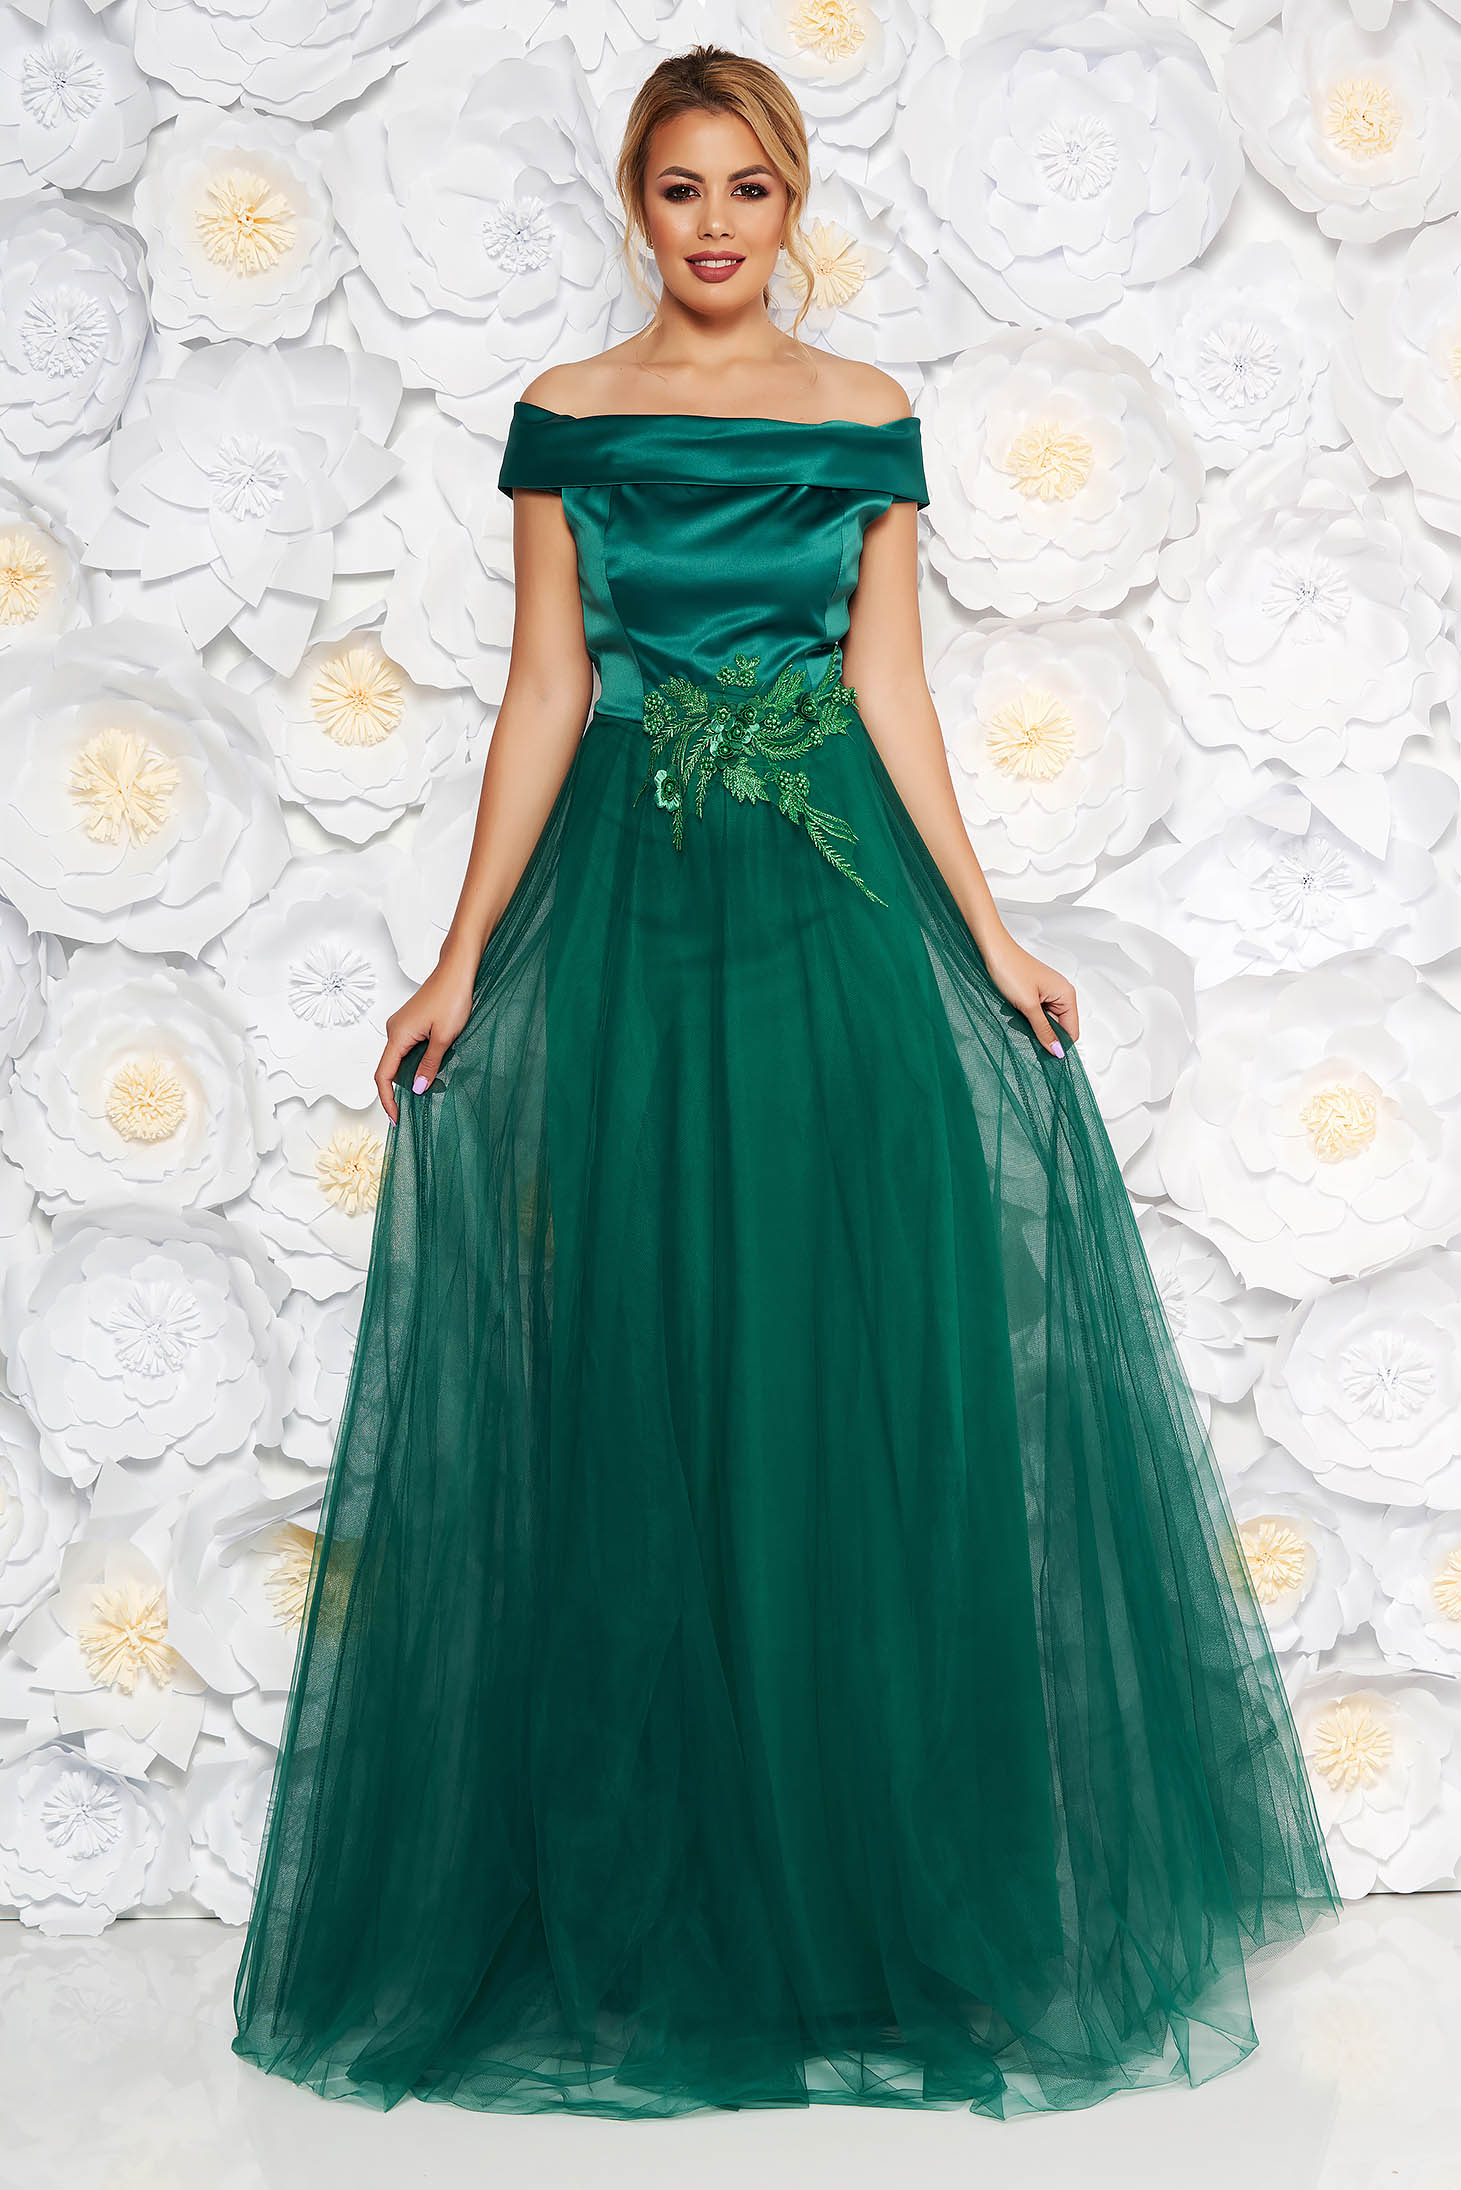 Artista darkgreen occasional dress from tulle from satin fabric texture with lace details with pearls with inside lining